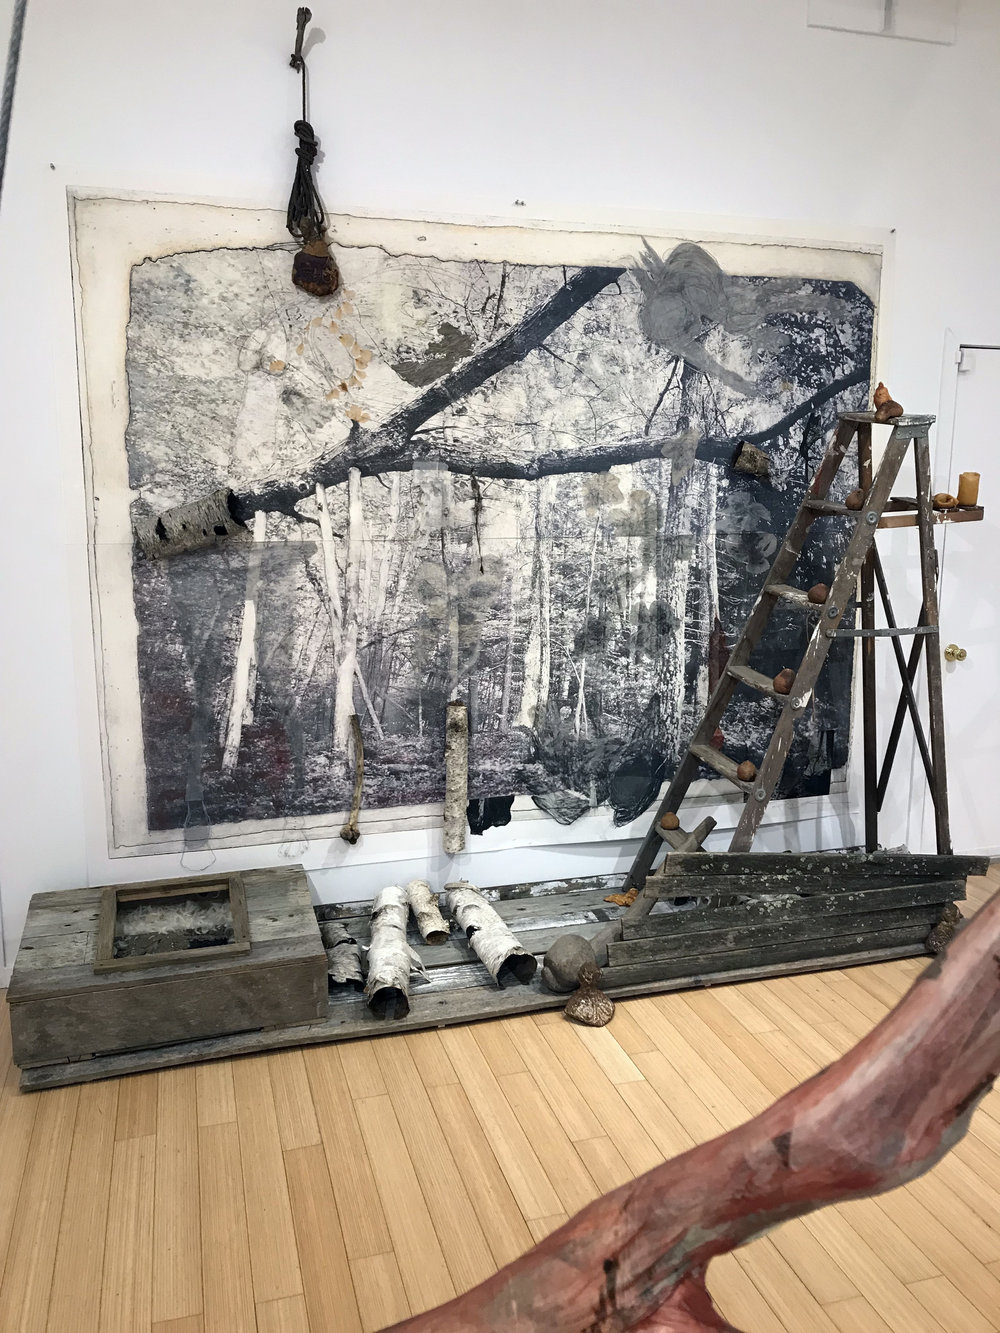 """She fell, he disintegrated, Black Flowers rained down as darkness descended"", 10' x 10', sculpture memorial with fallen tree, photogravure, giclee print, graphite, charcoal, chalk, pastel, collograph, tarleton, wood, birch bark, wasp paper, rose petals, snake skin, latex, urethane, feathers, bone, dried tangerines and old ladder"